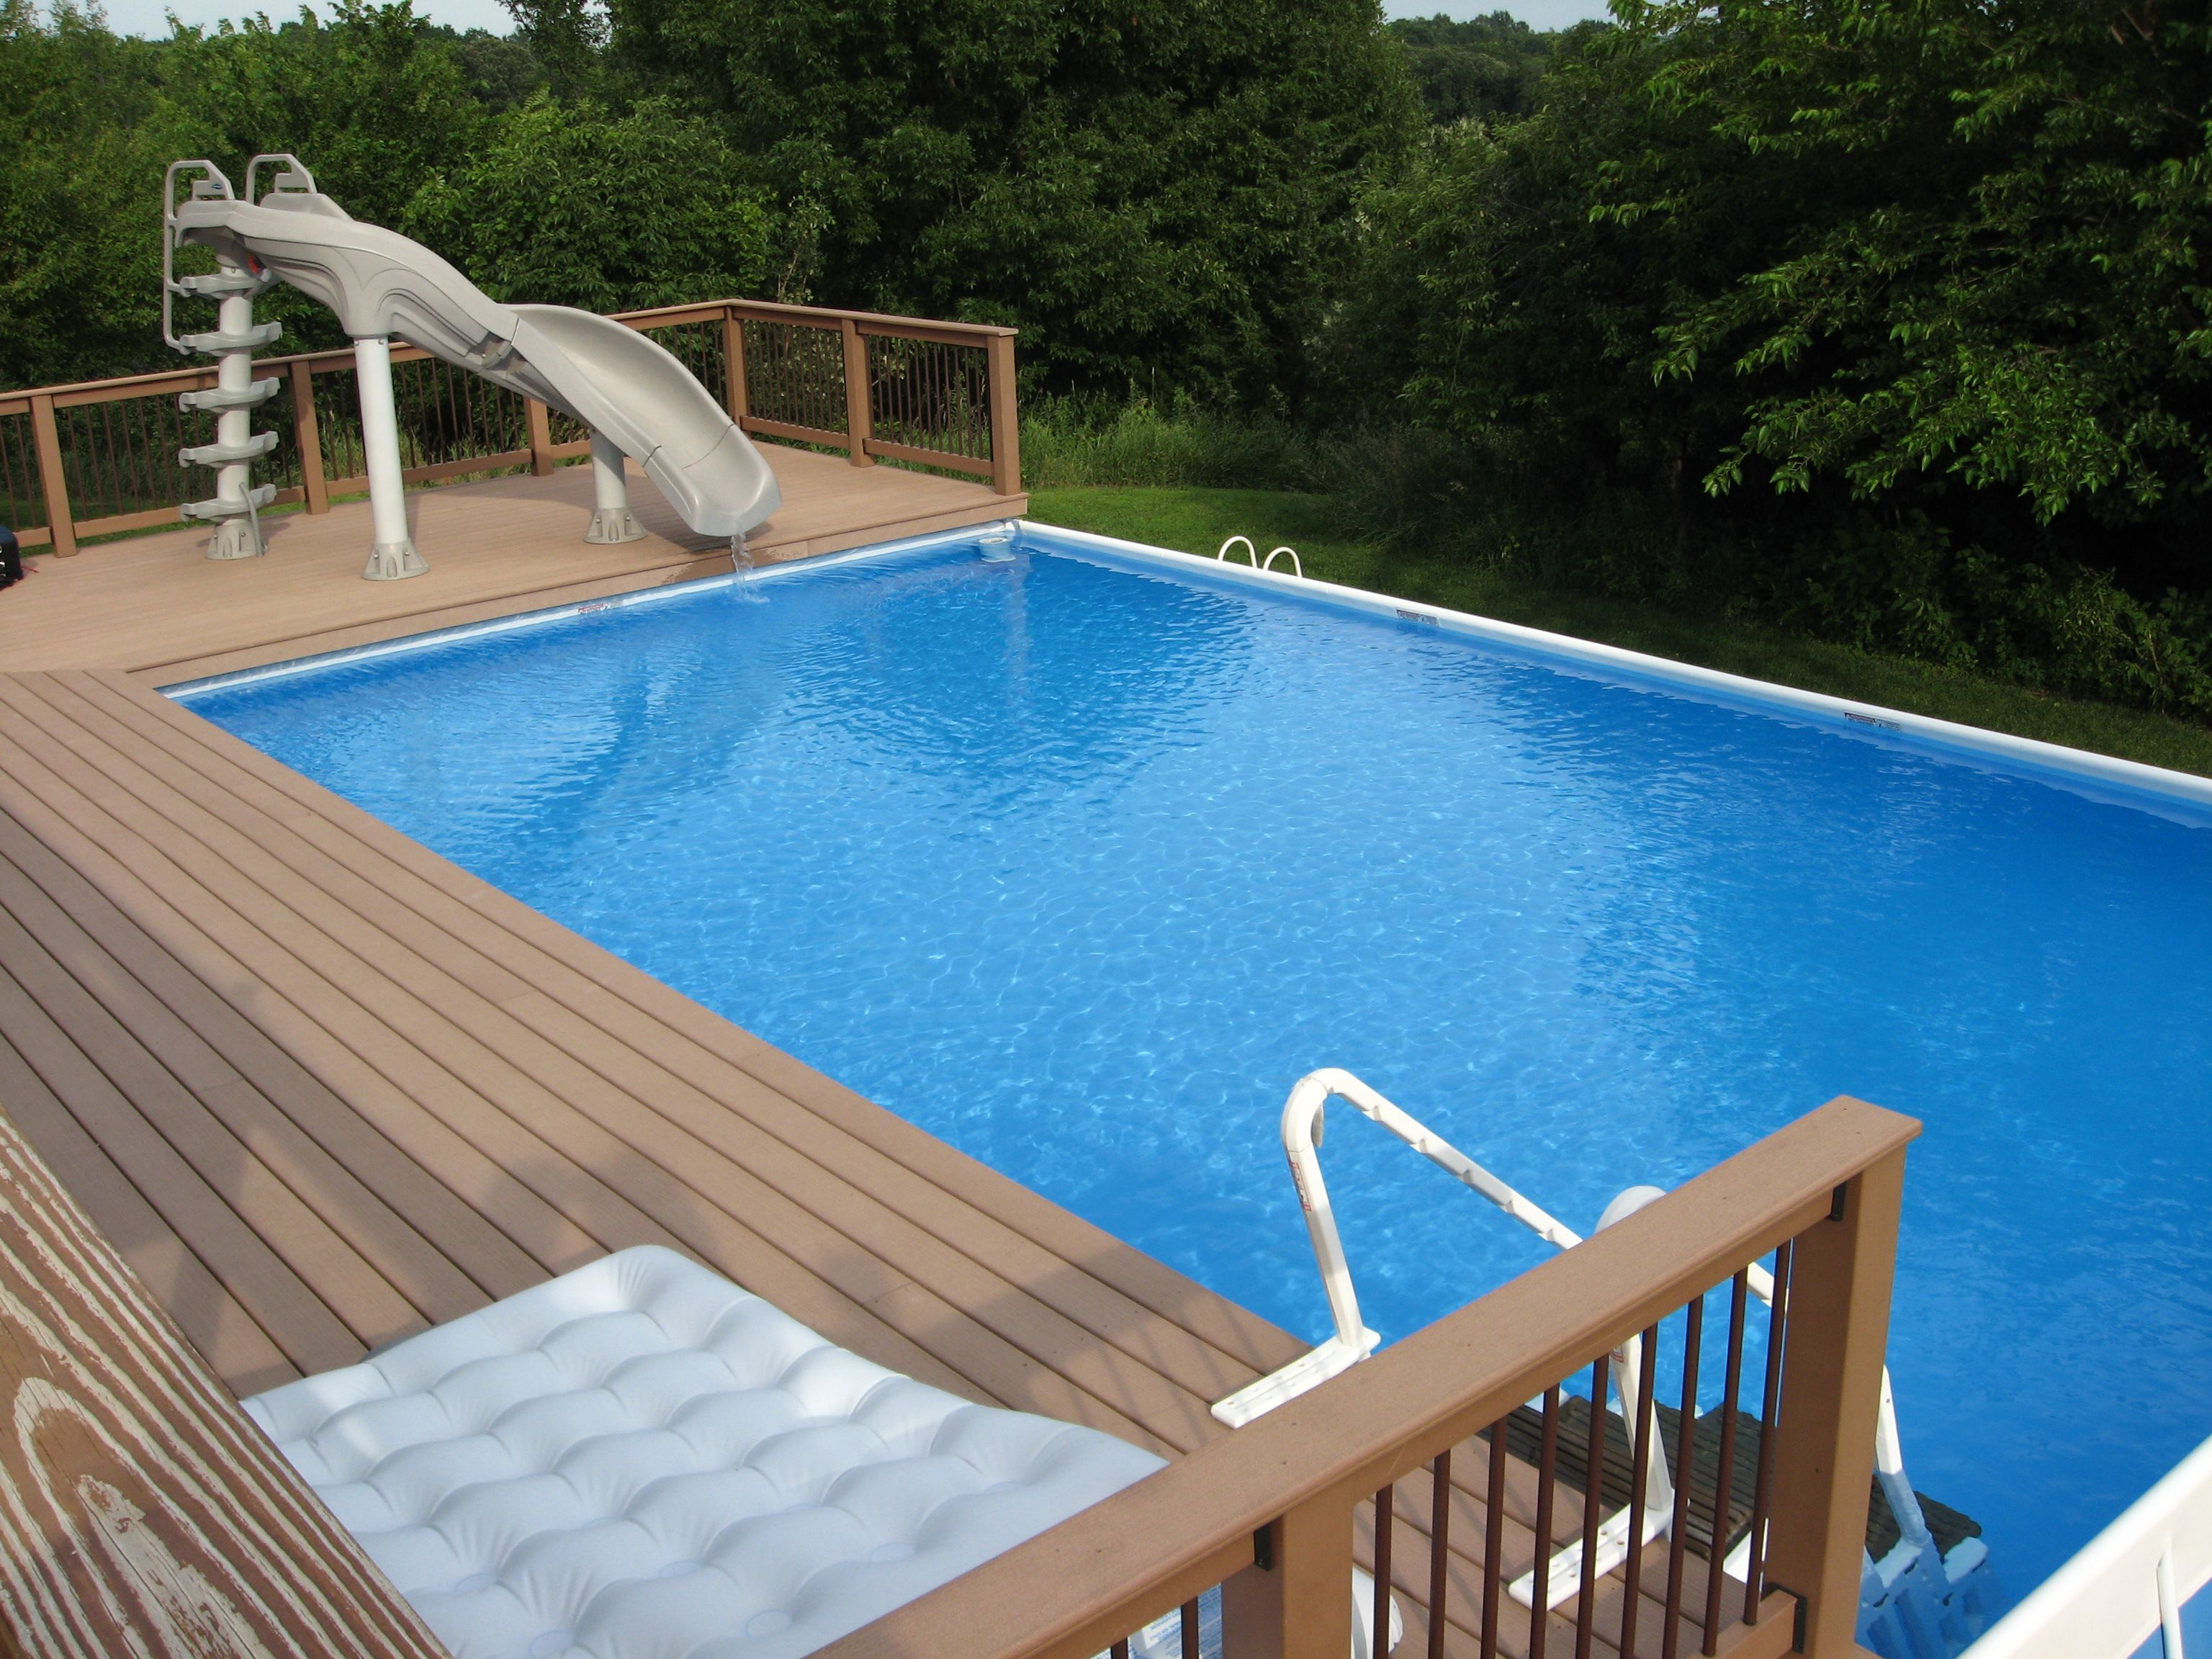 Deck Design Ideas For Above Ground Pools above ground pool deck plans youtube Above Ground Pool Decks Idea For Your Backyard Decor Beautiful Above Ground Pool Custom Decks